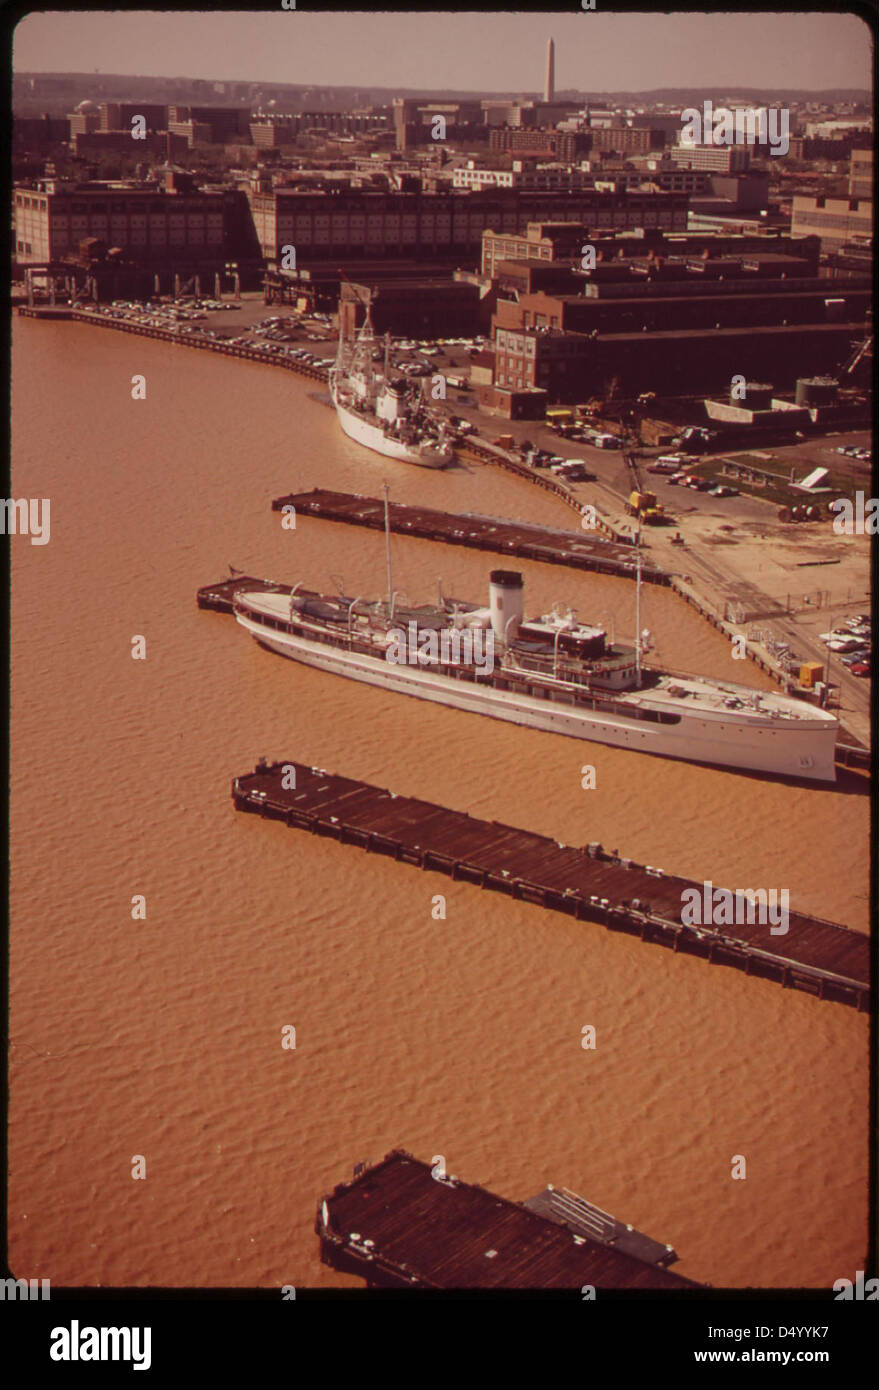 Aerial View Of The Washington Navy Yard And The Anacostia River. Excessive Silt Causes The Brown Color Of The Water, Stock Photo